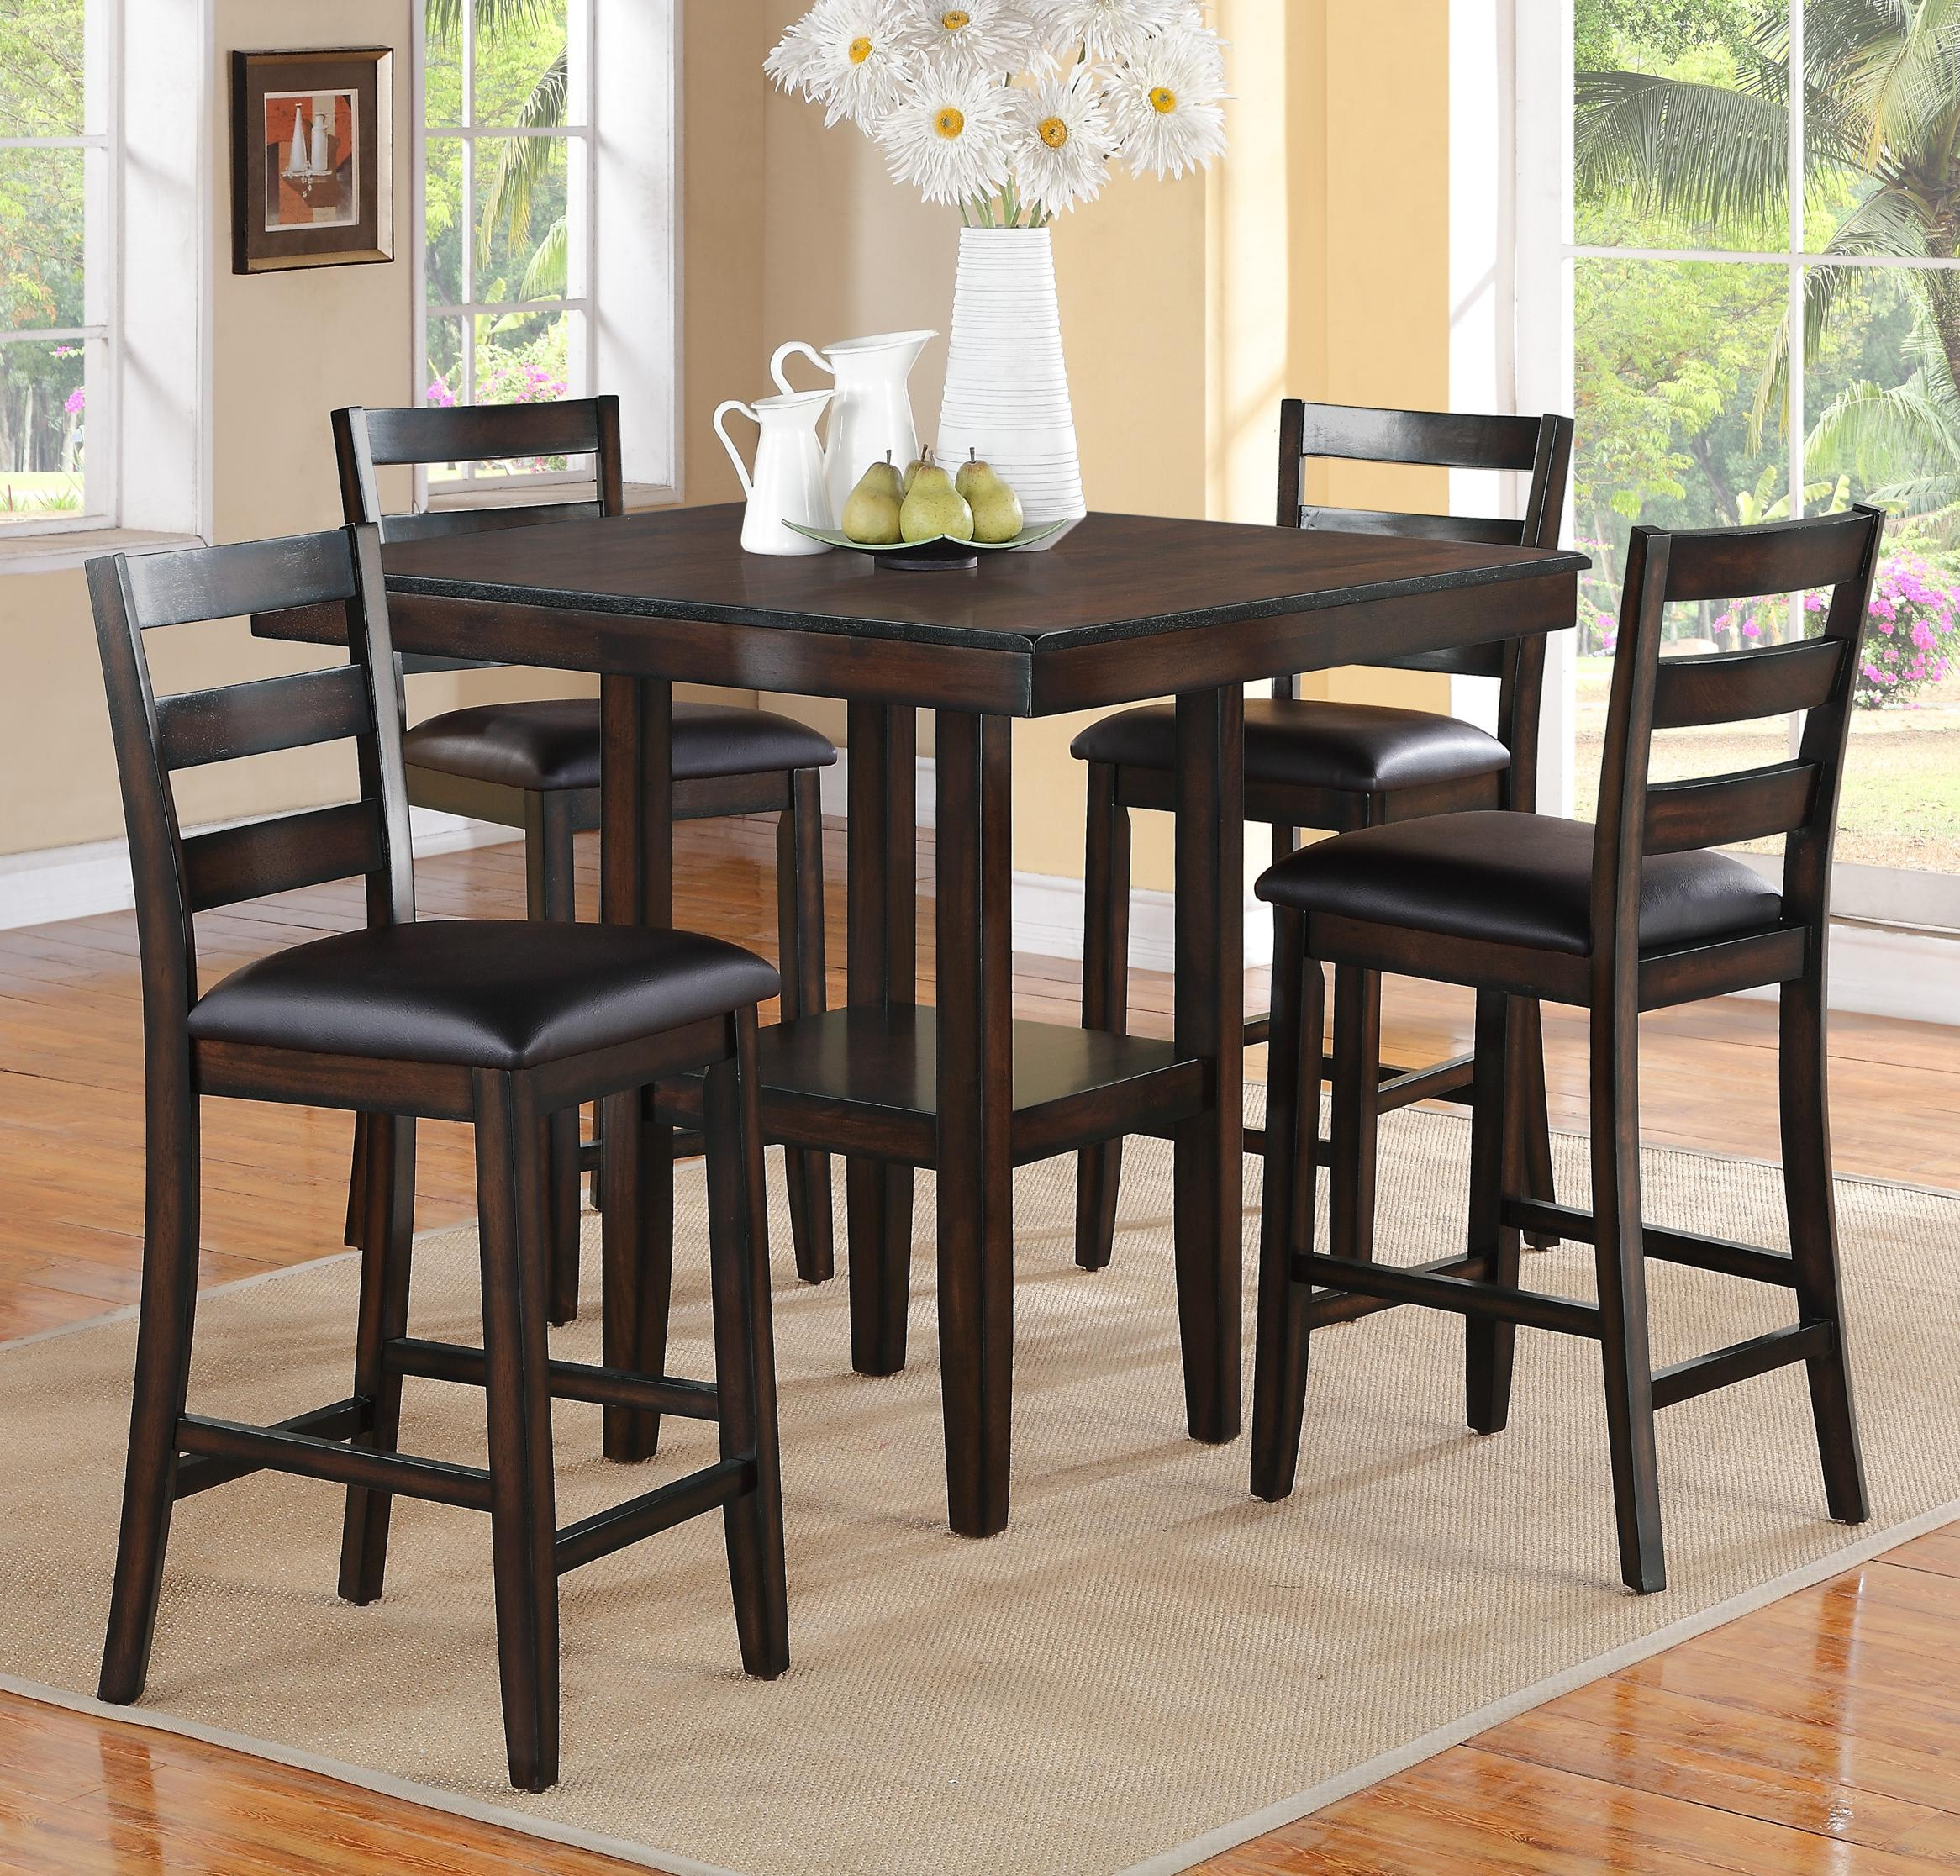 Crown mark tahoe 2630set 5 piece counter height table and - Bar height pub table and chairs ...